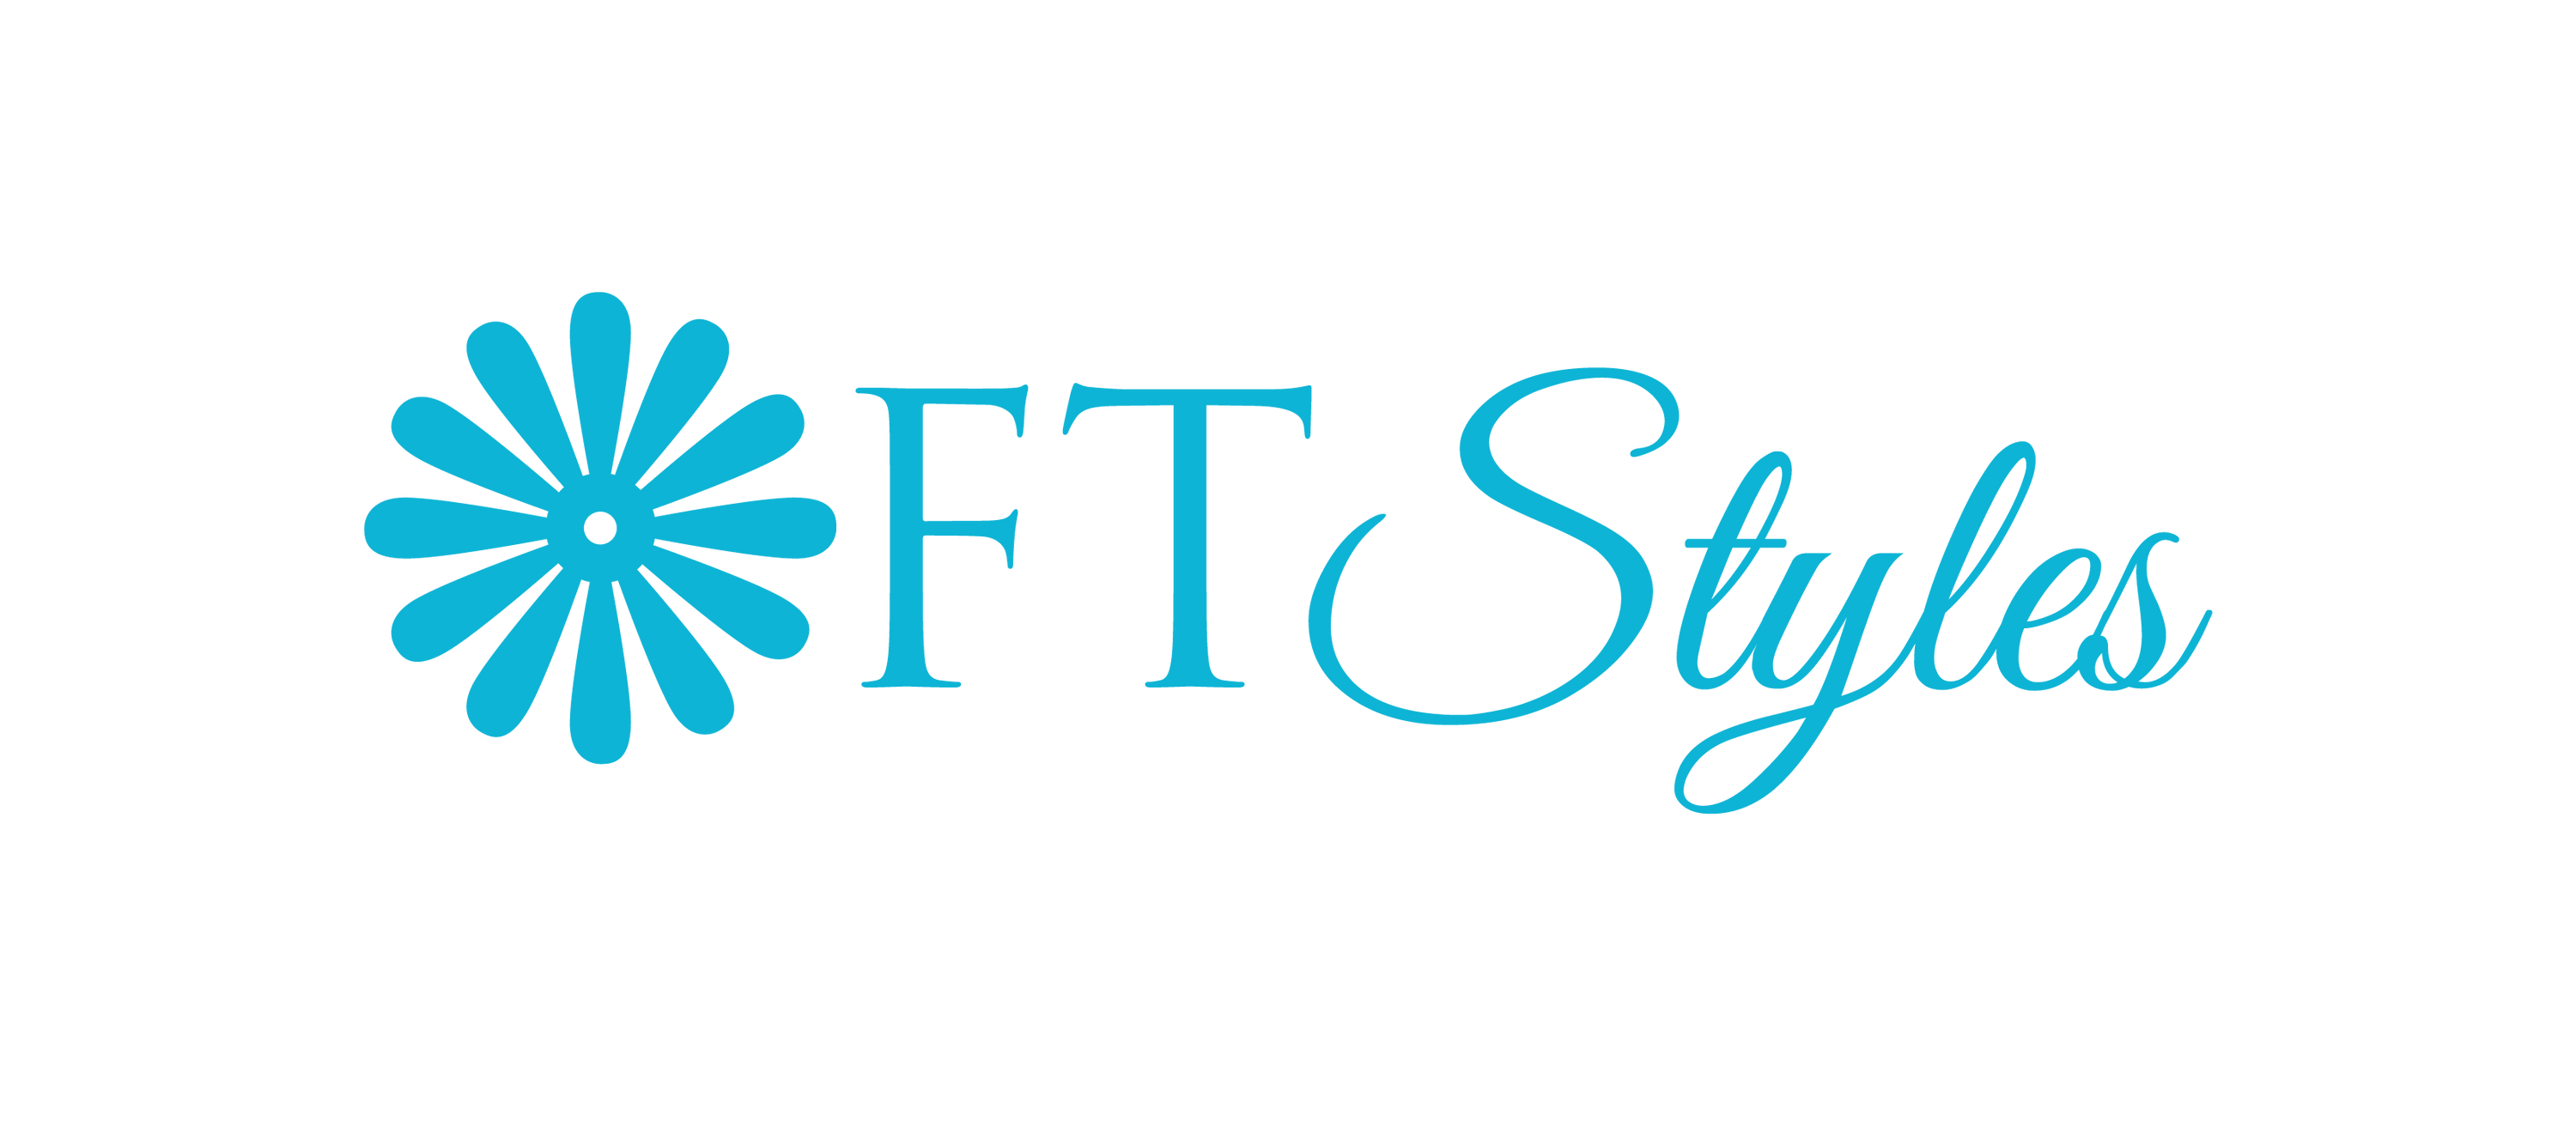 FT Styles - your fave online accessories store - necklaces, bracelets, rings and other accessories. Visit us online at ftstyles.com